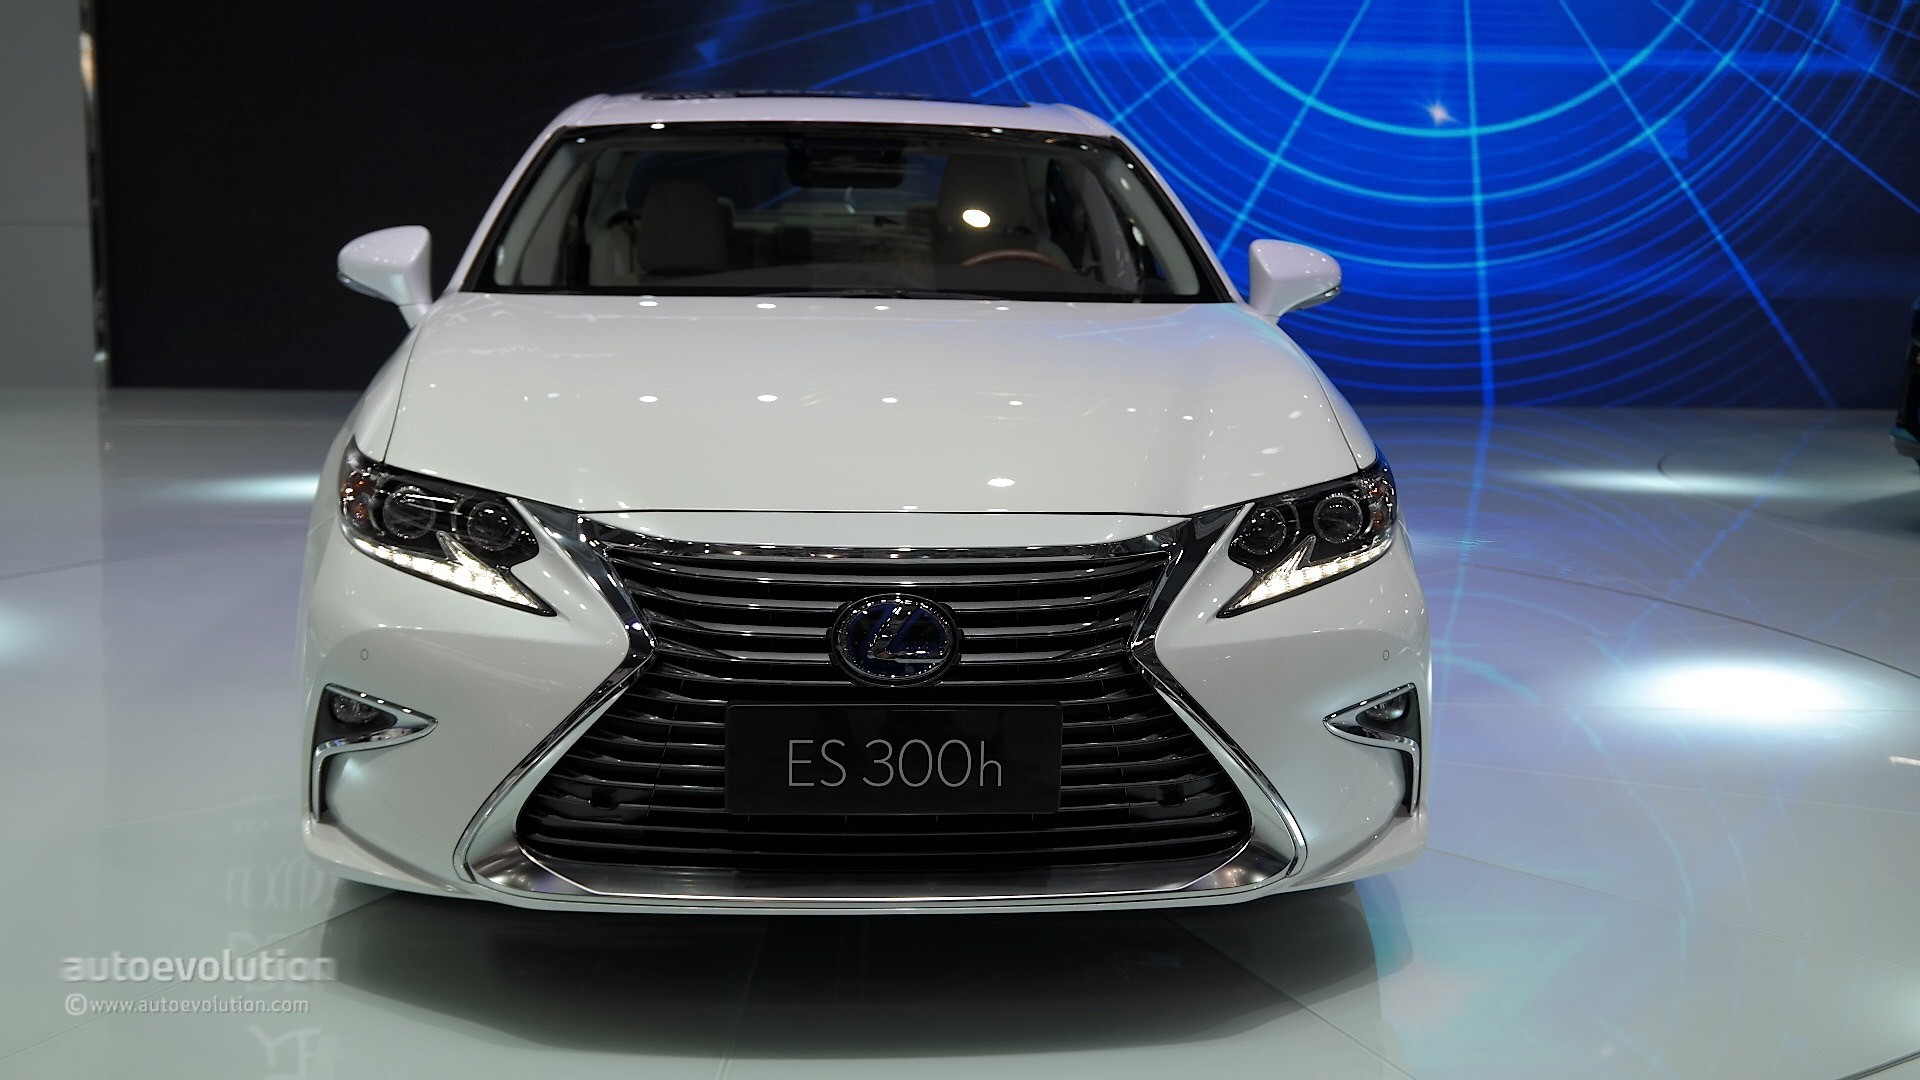 2016 Lexus Es Facelift Is Full Of Self Esteem At Auto